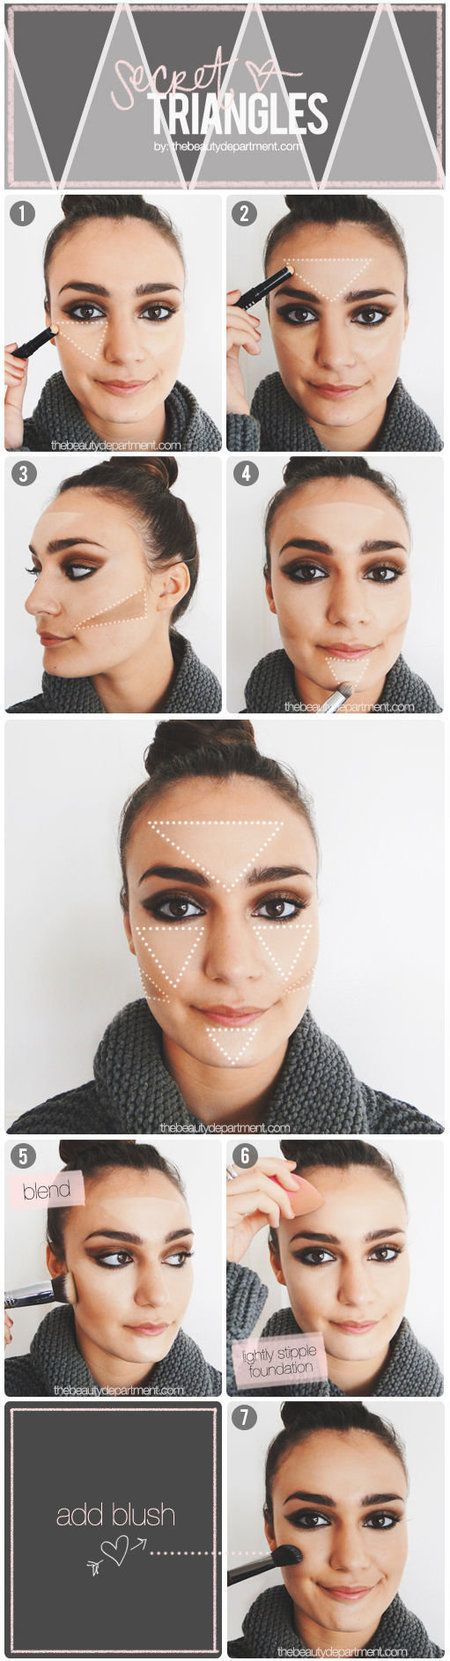 Beauty Tips With Secret Triangles